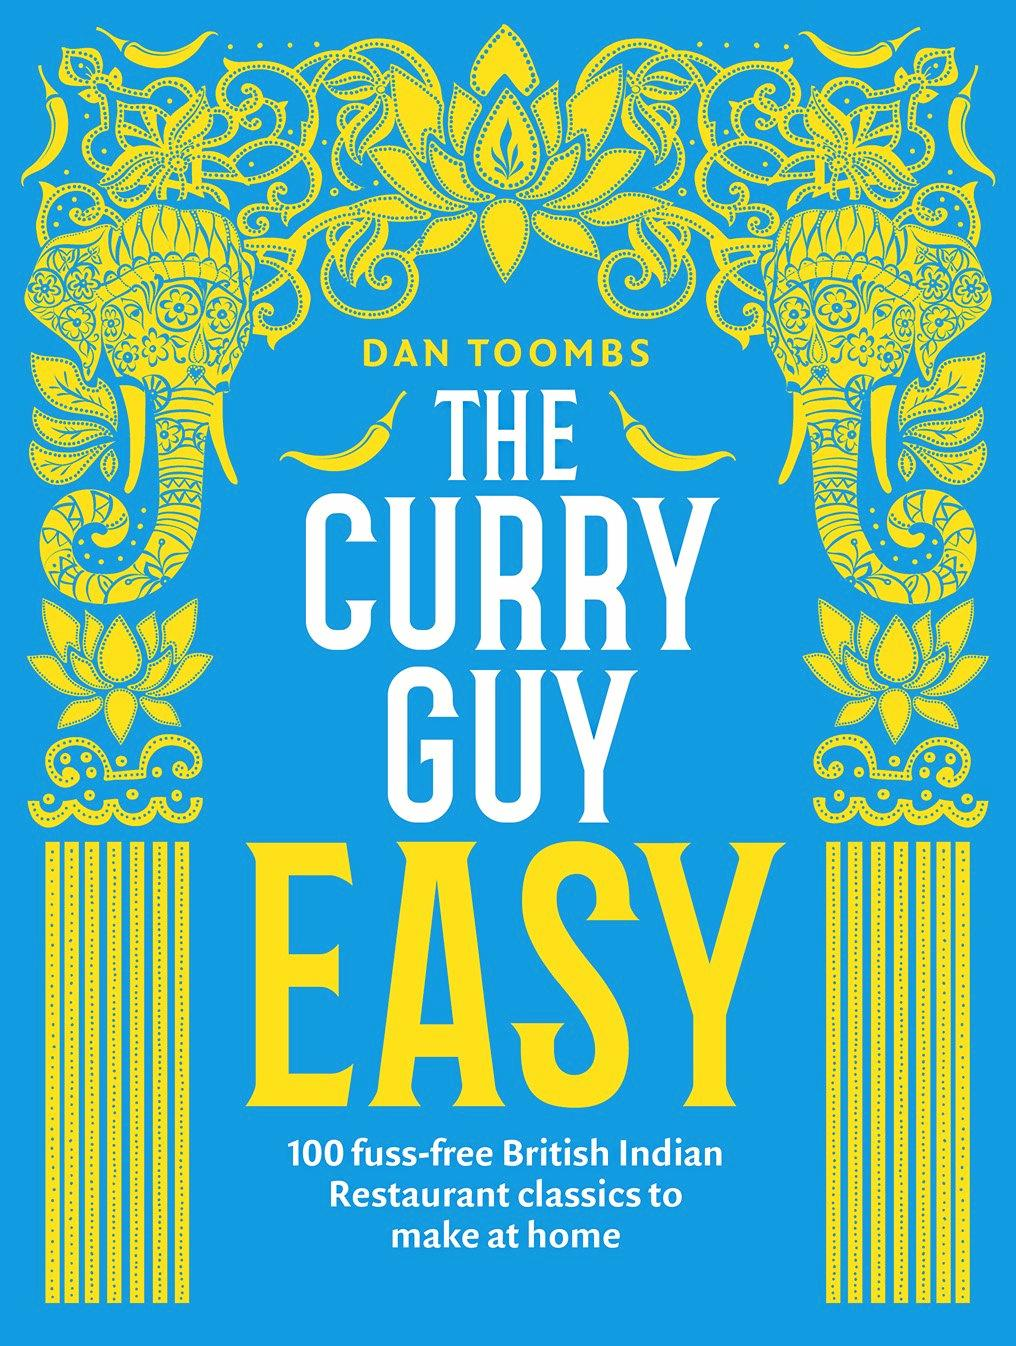 The Curry Guy.